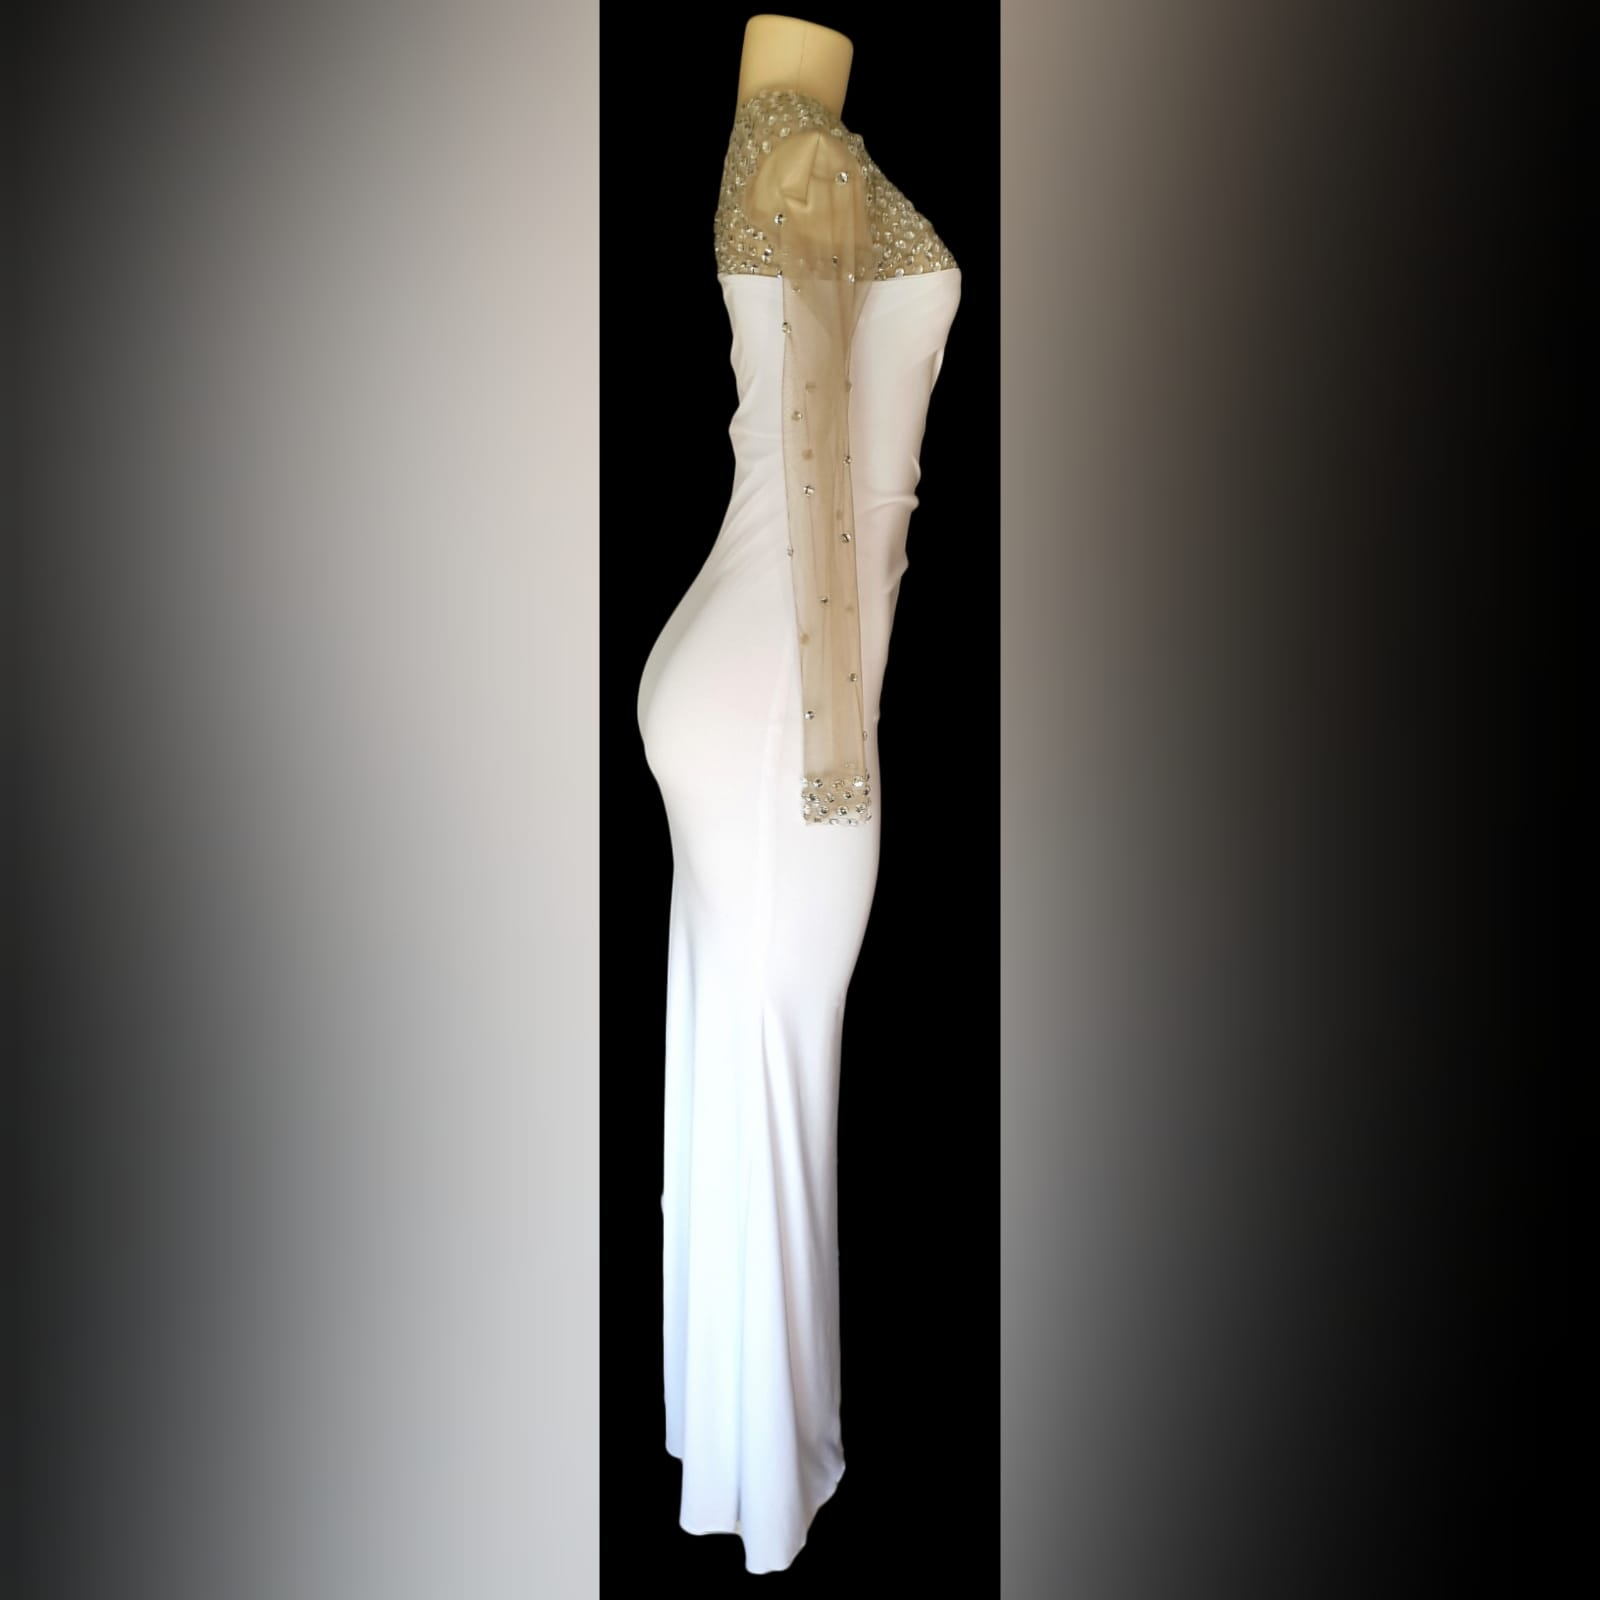 White and silver long fitted new years party dress 6 white and silver long fitted new years party dress. With an angled neckline and one sleeve detailed with silver beads. With a sheer side panel with beads creating a slit.